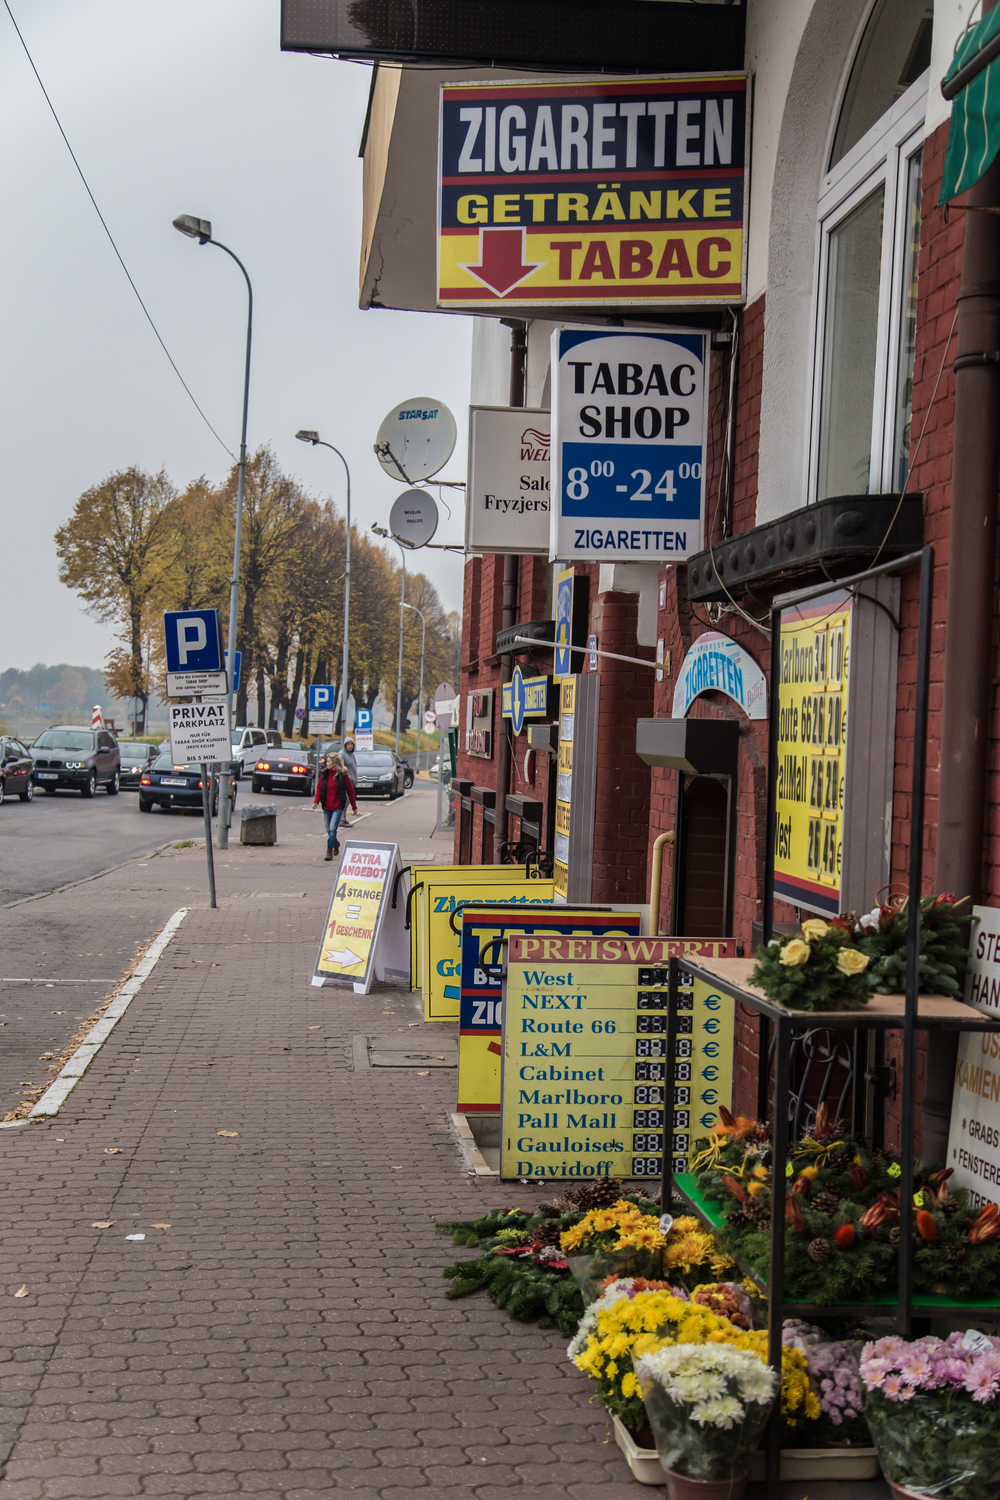 Cigarette shops are the first thing you see in Poland's Slubice.